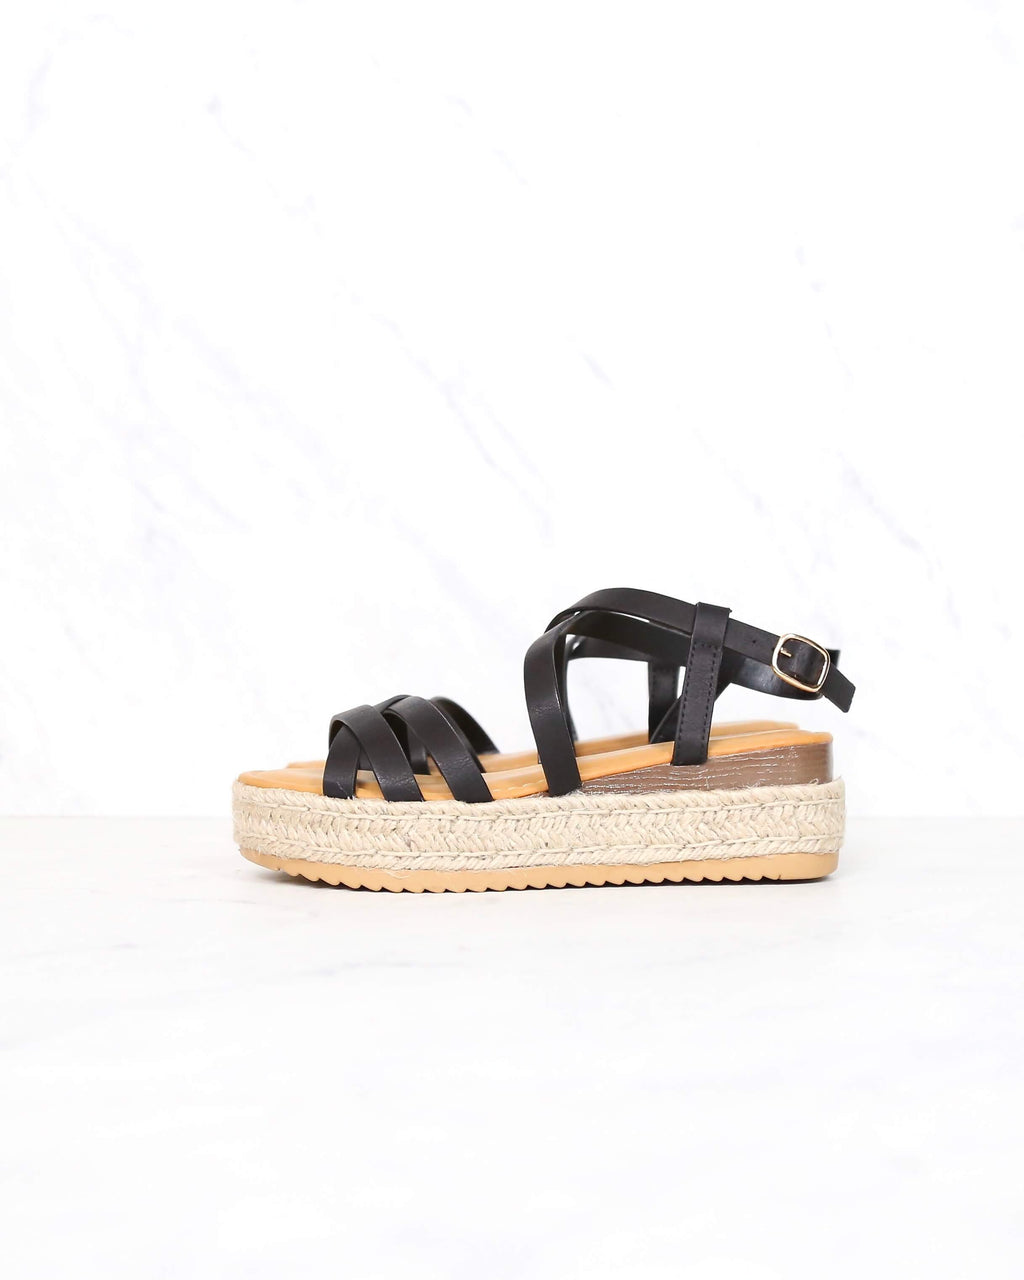 Multi Bands Crossed-Strap Espadrille Platform Sandal with Ankle Strap in Black